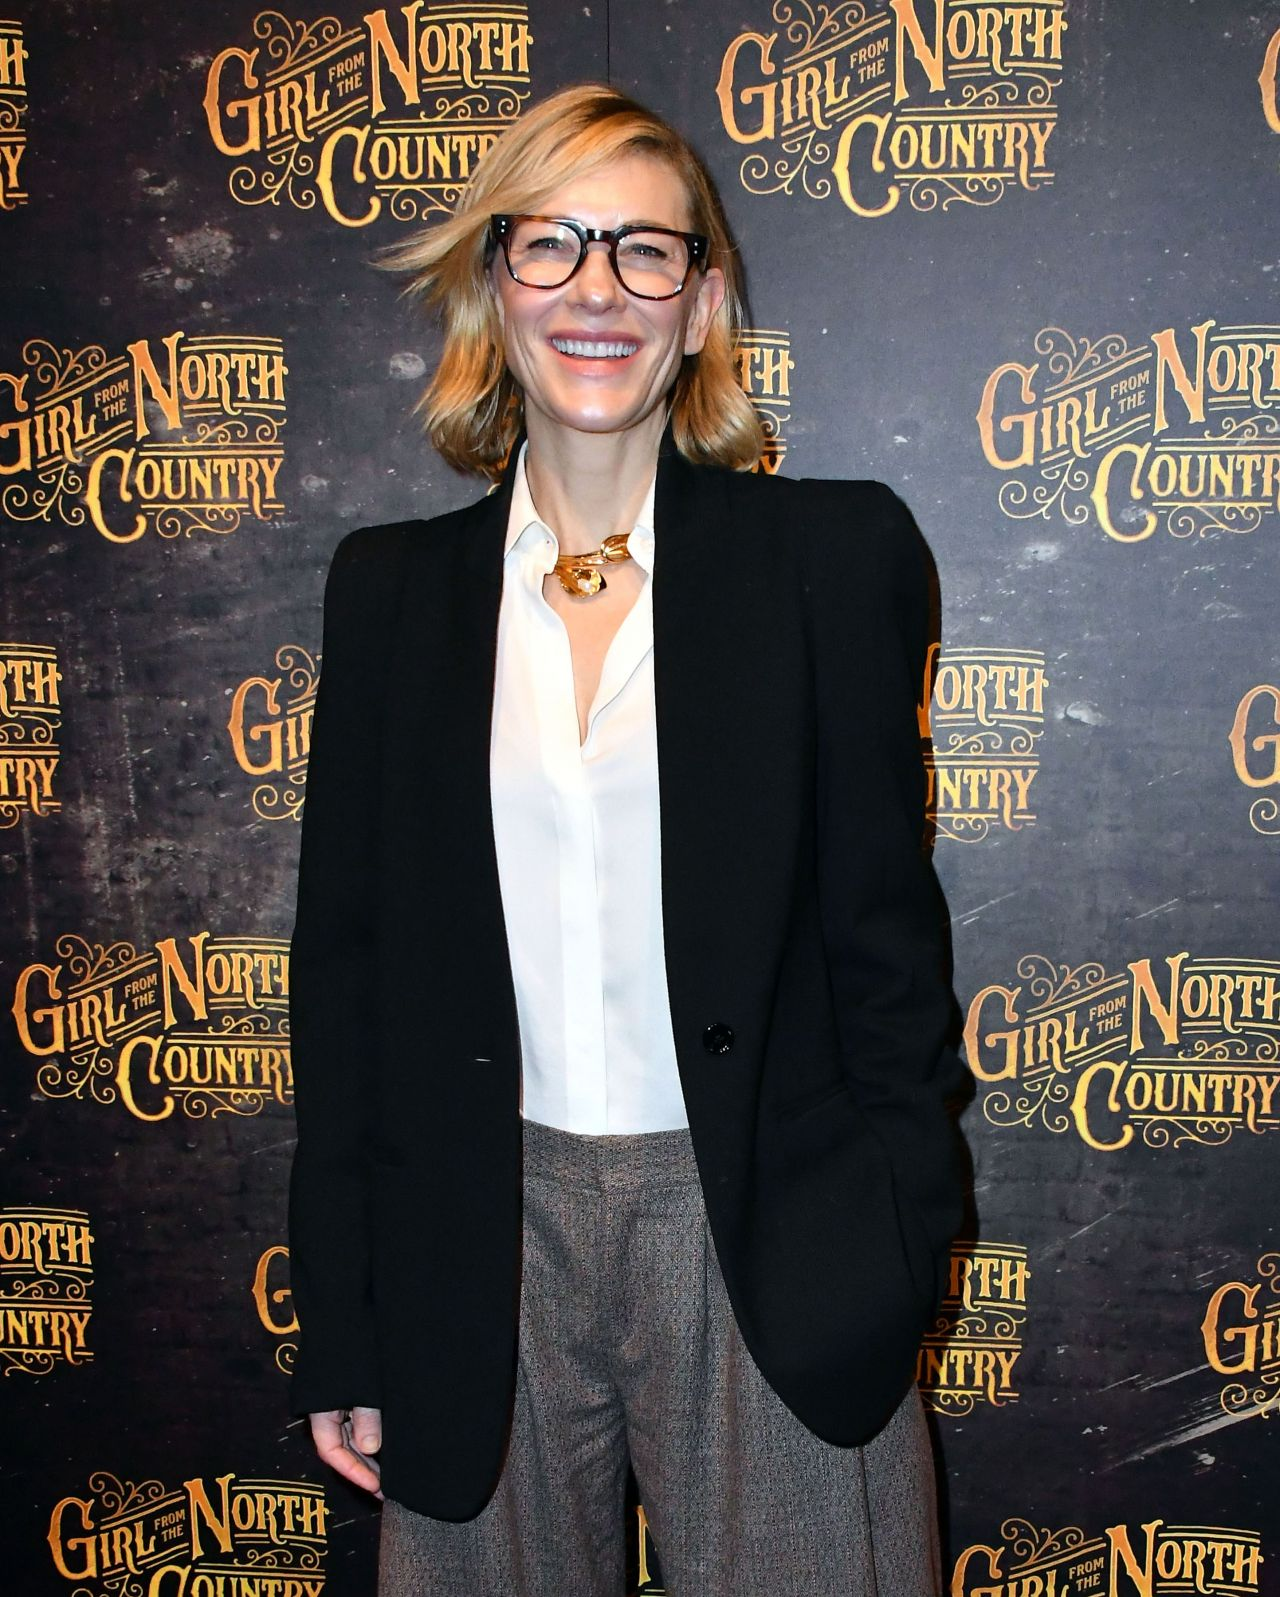 http://celebmafia.com/wp-content/uploads/2018/01/cate-blanchett-girl-from-the-north-country-play-opening-night-in-london-2.jpg